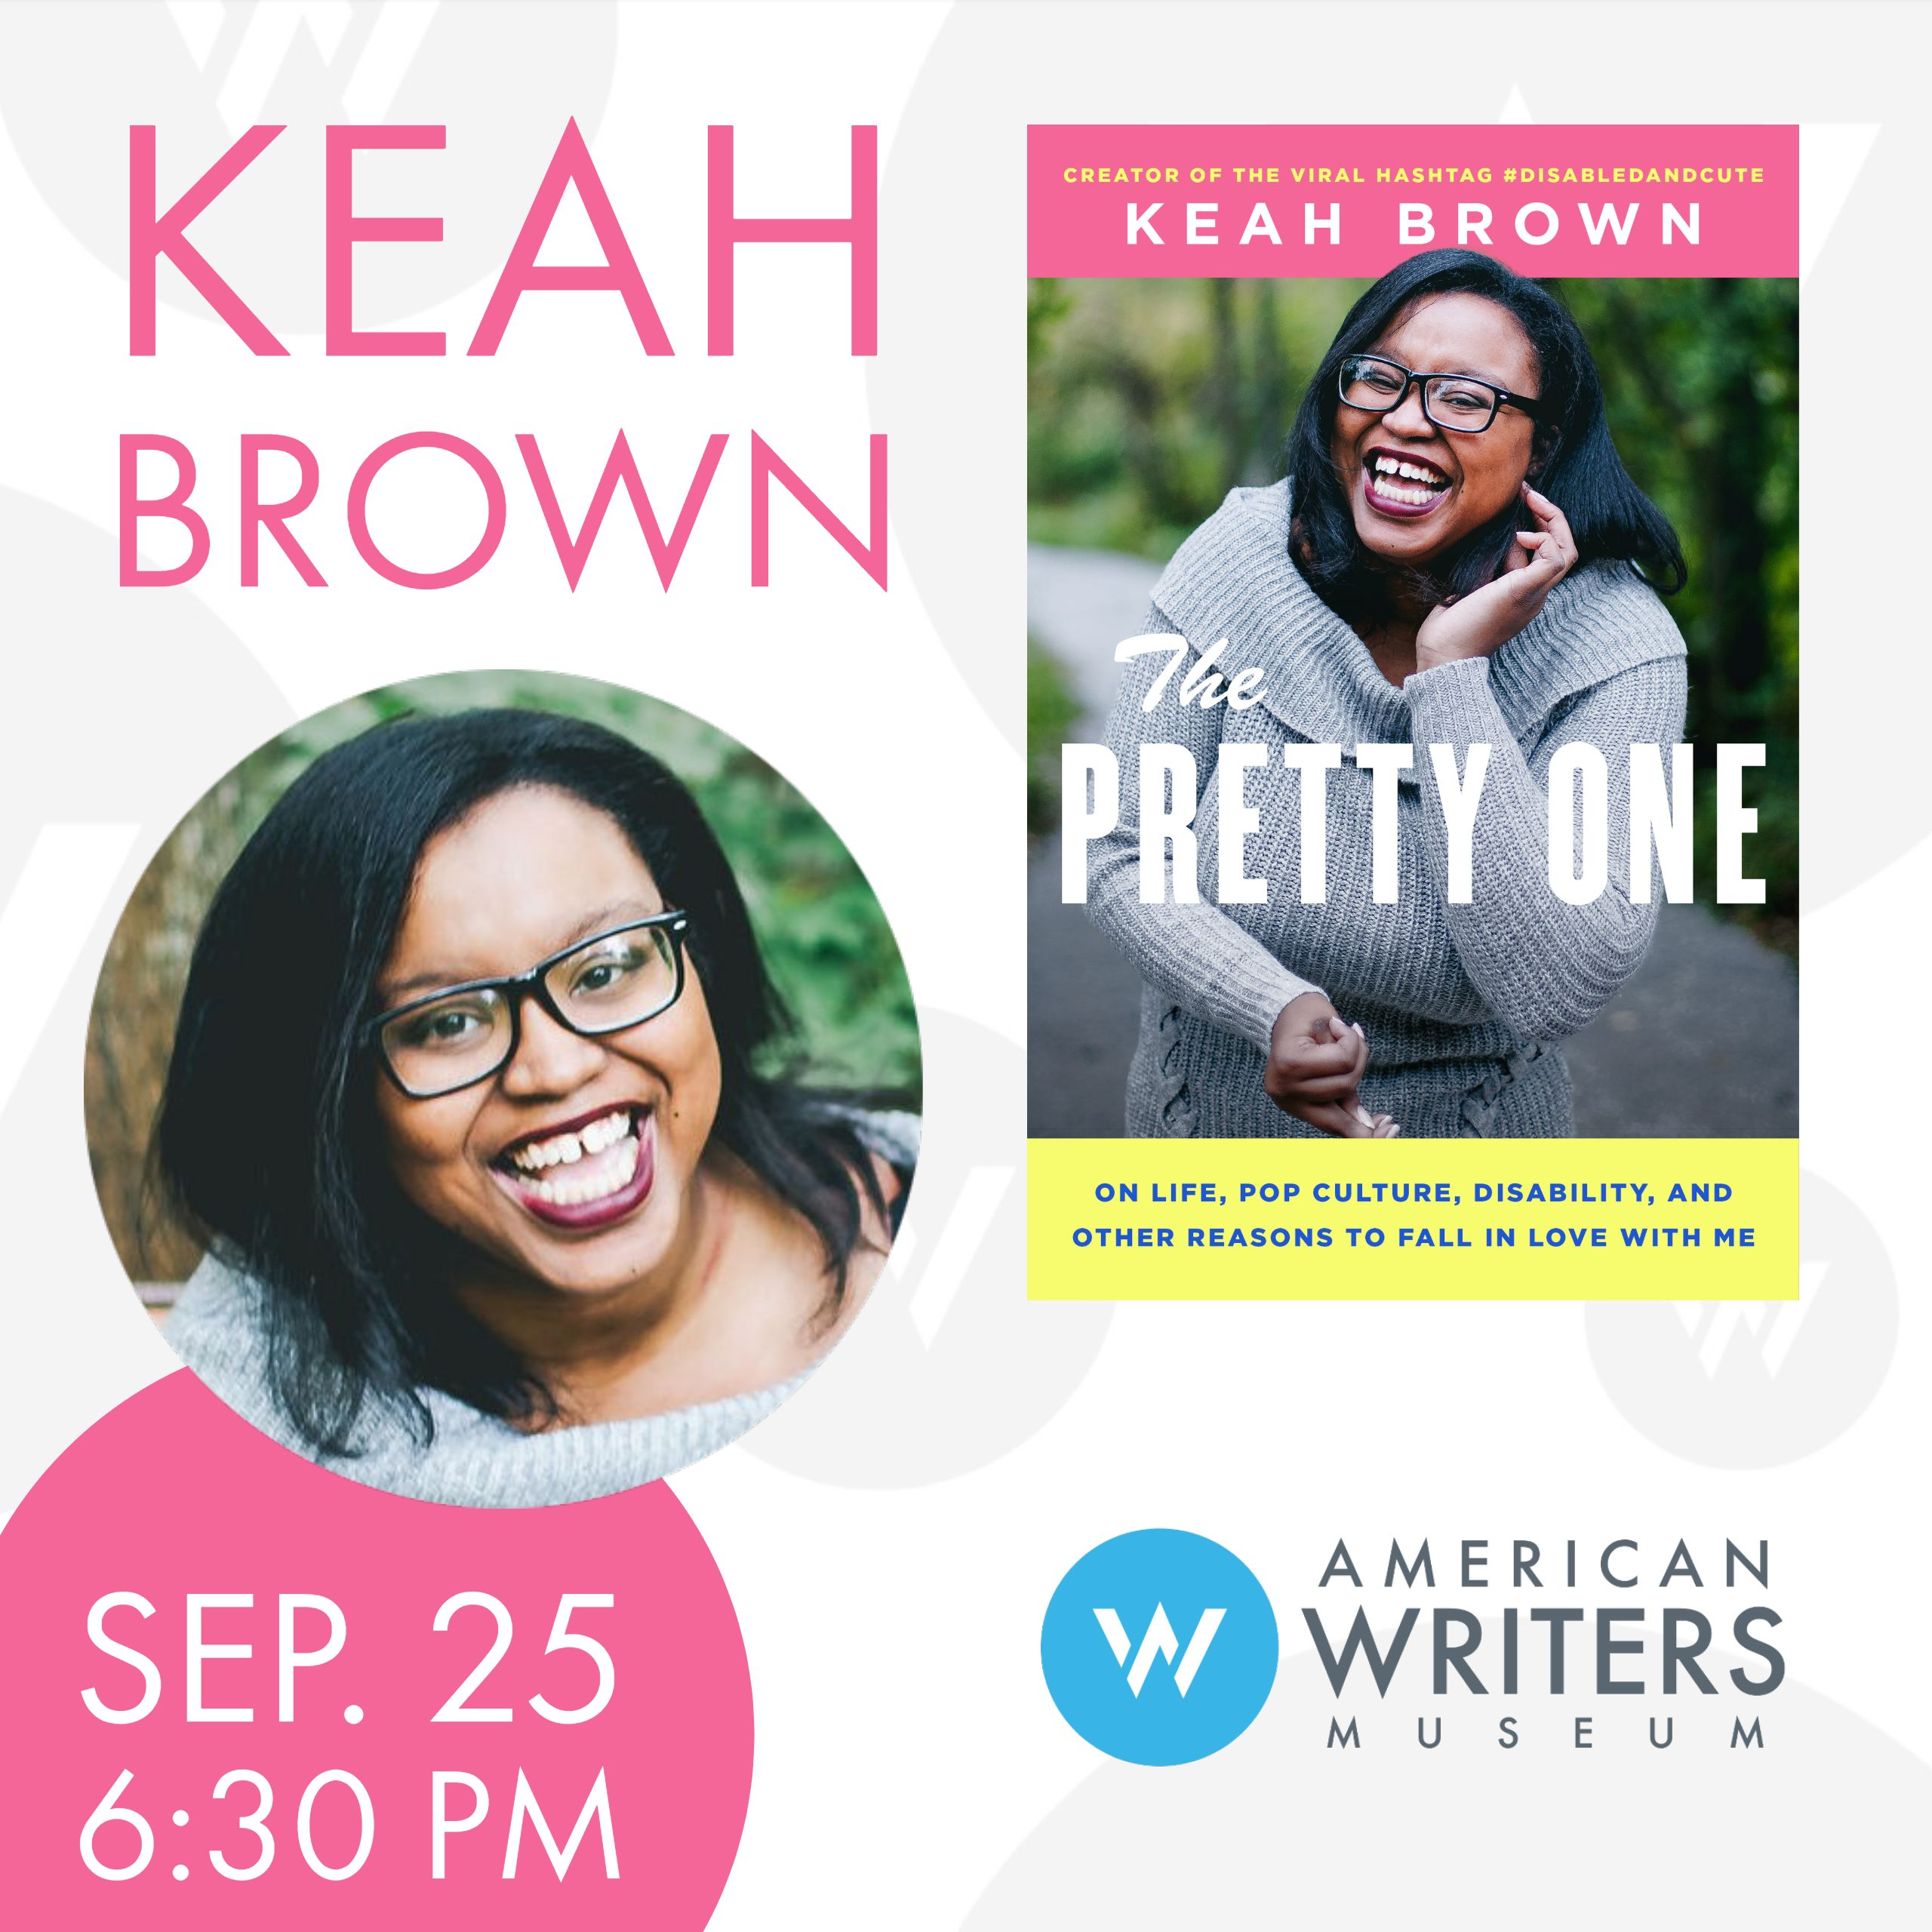 Keah Brown at the American Writers Museum on September 25